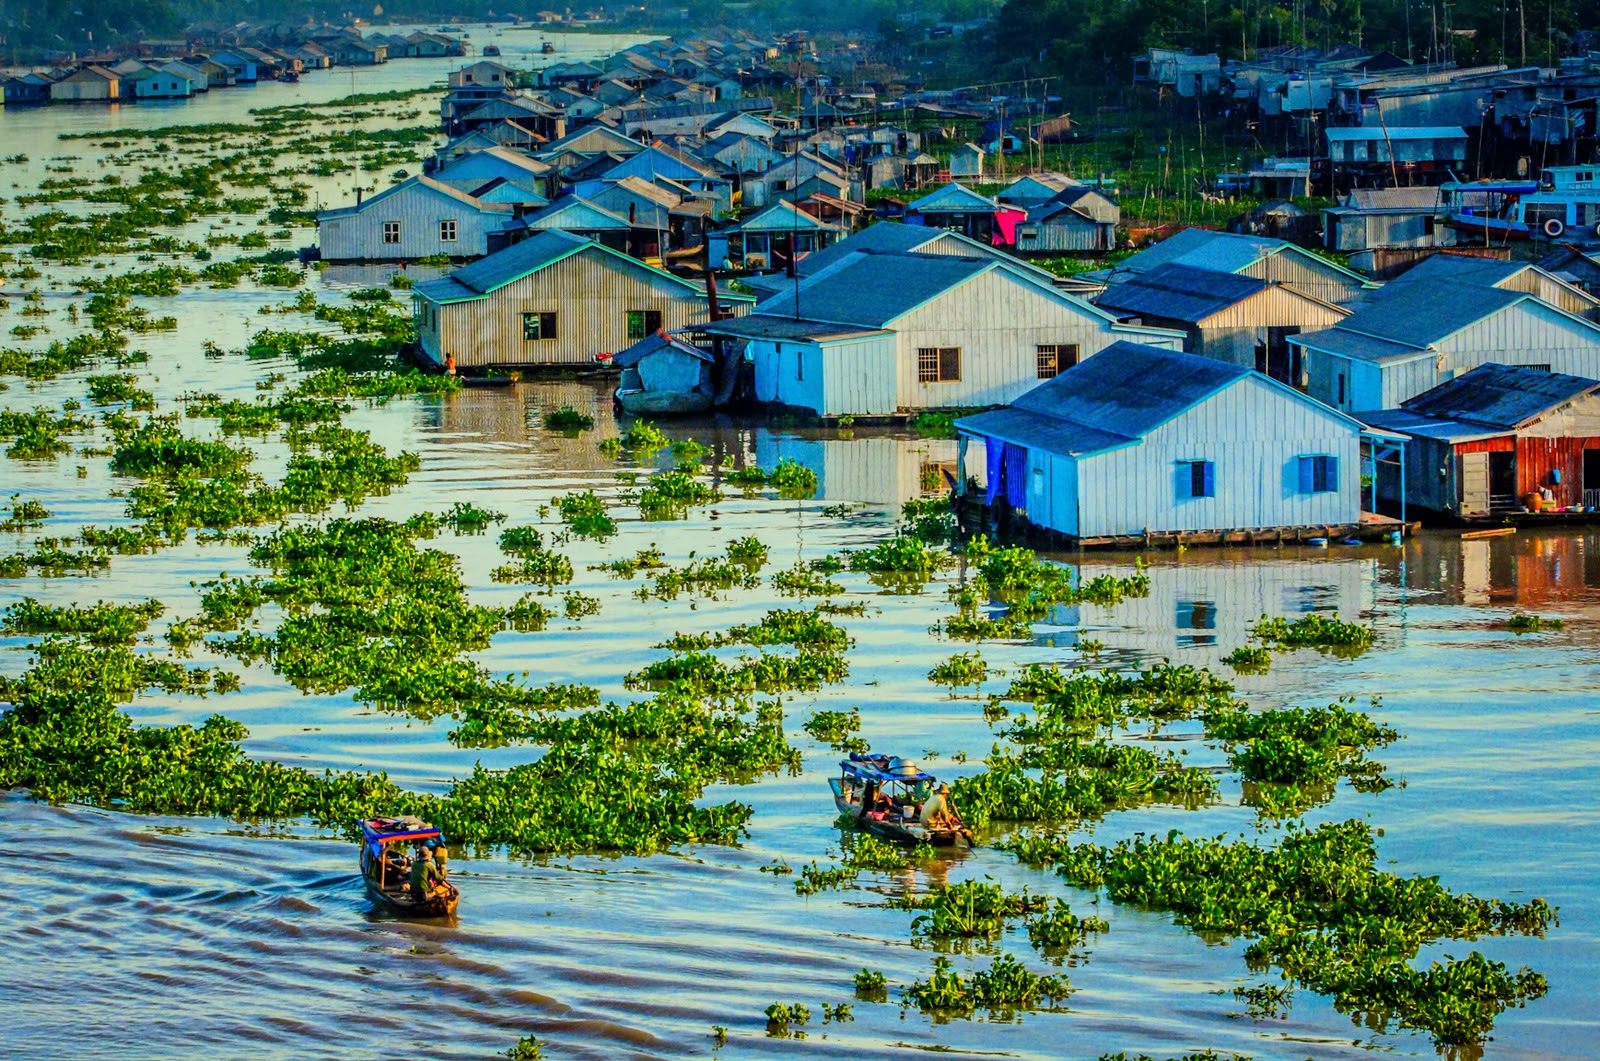 Chau Doc is often combined with Can Tho trip